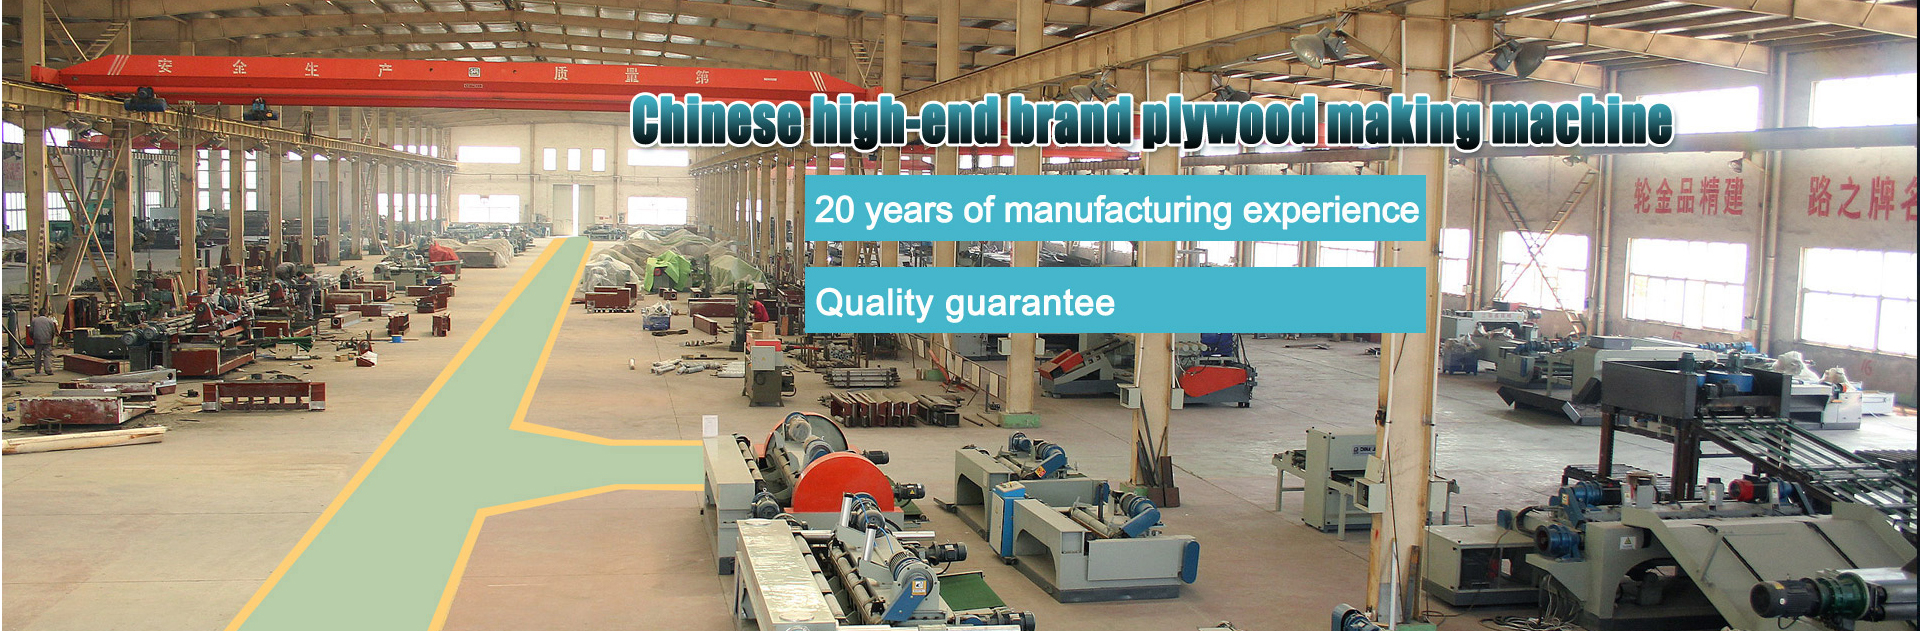 plywood-making-machine-manufacturer